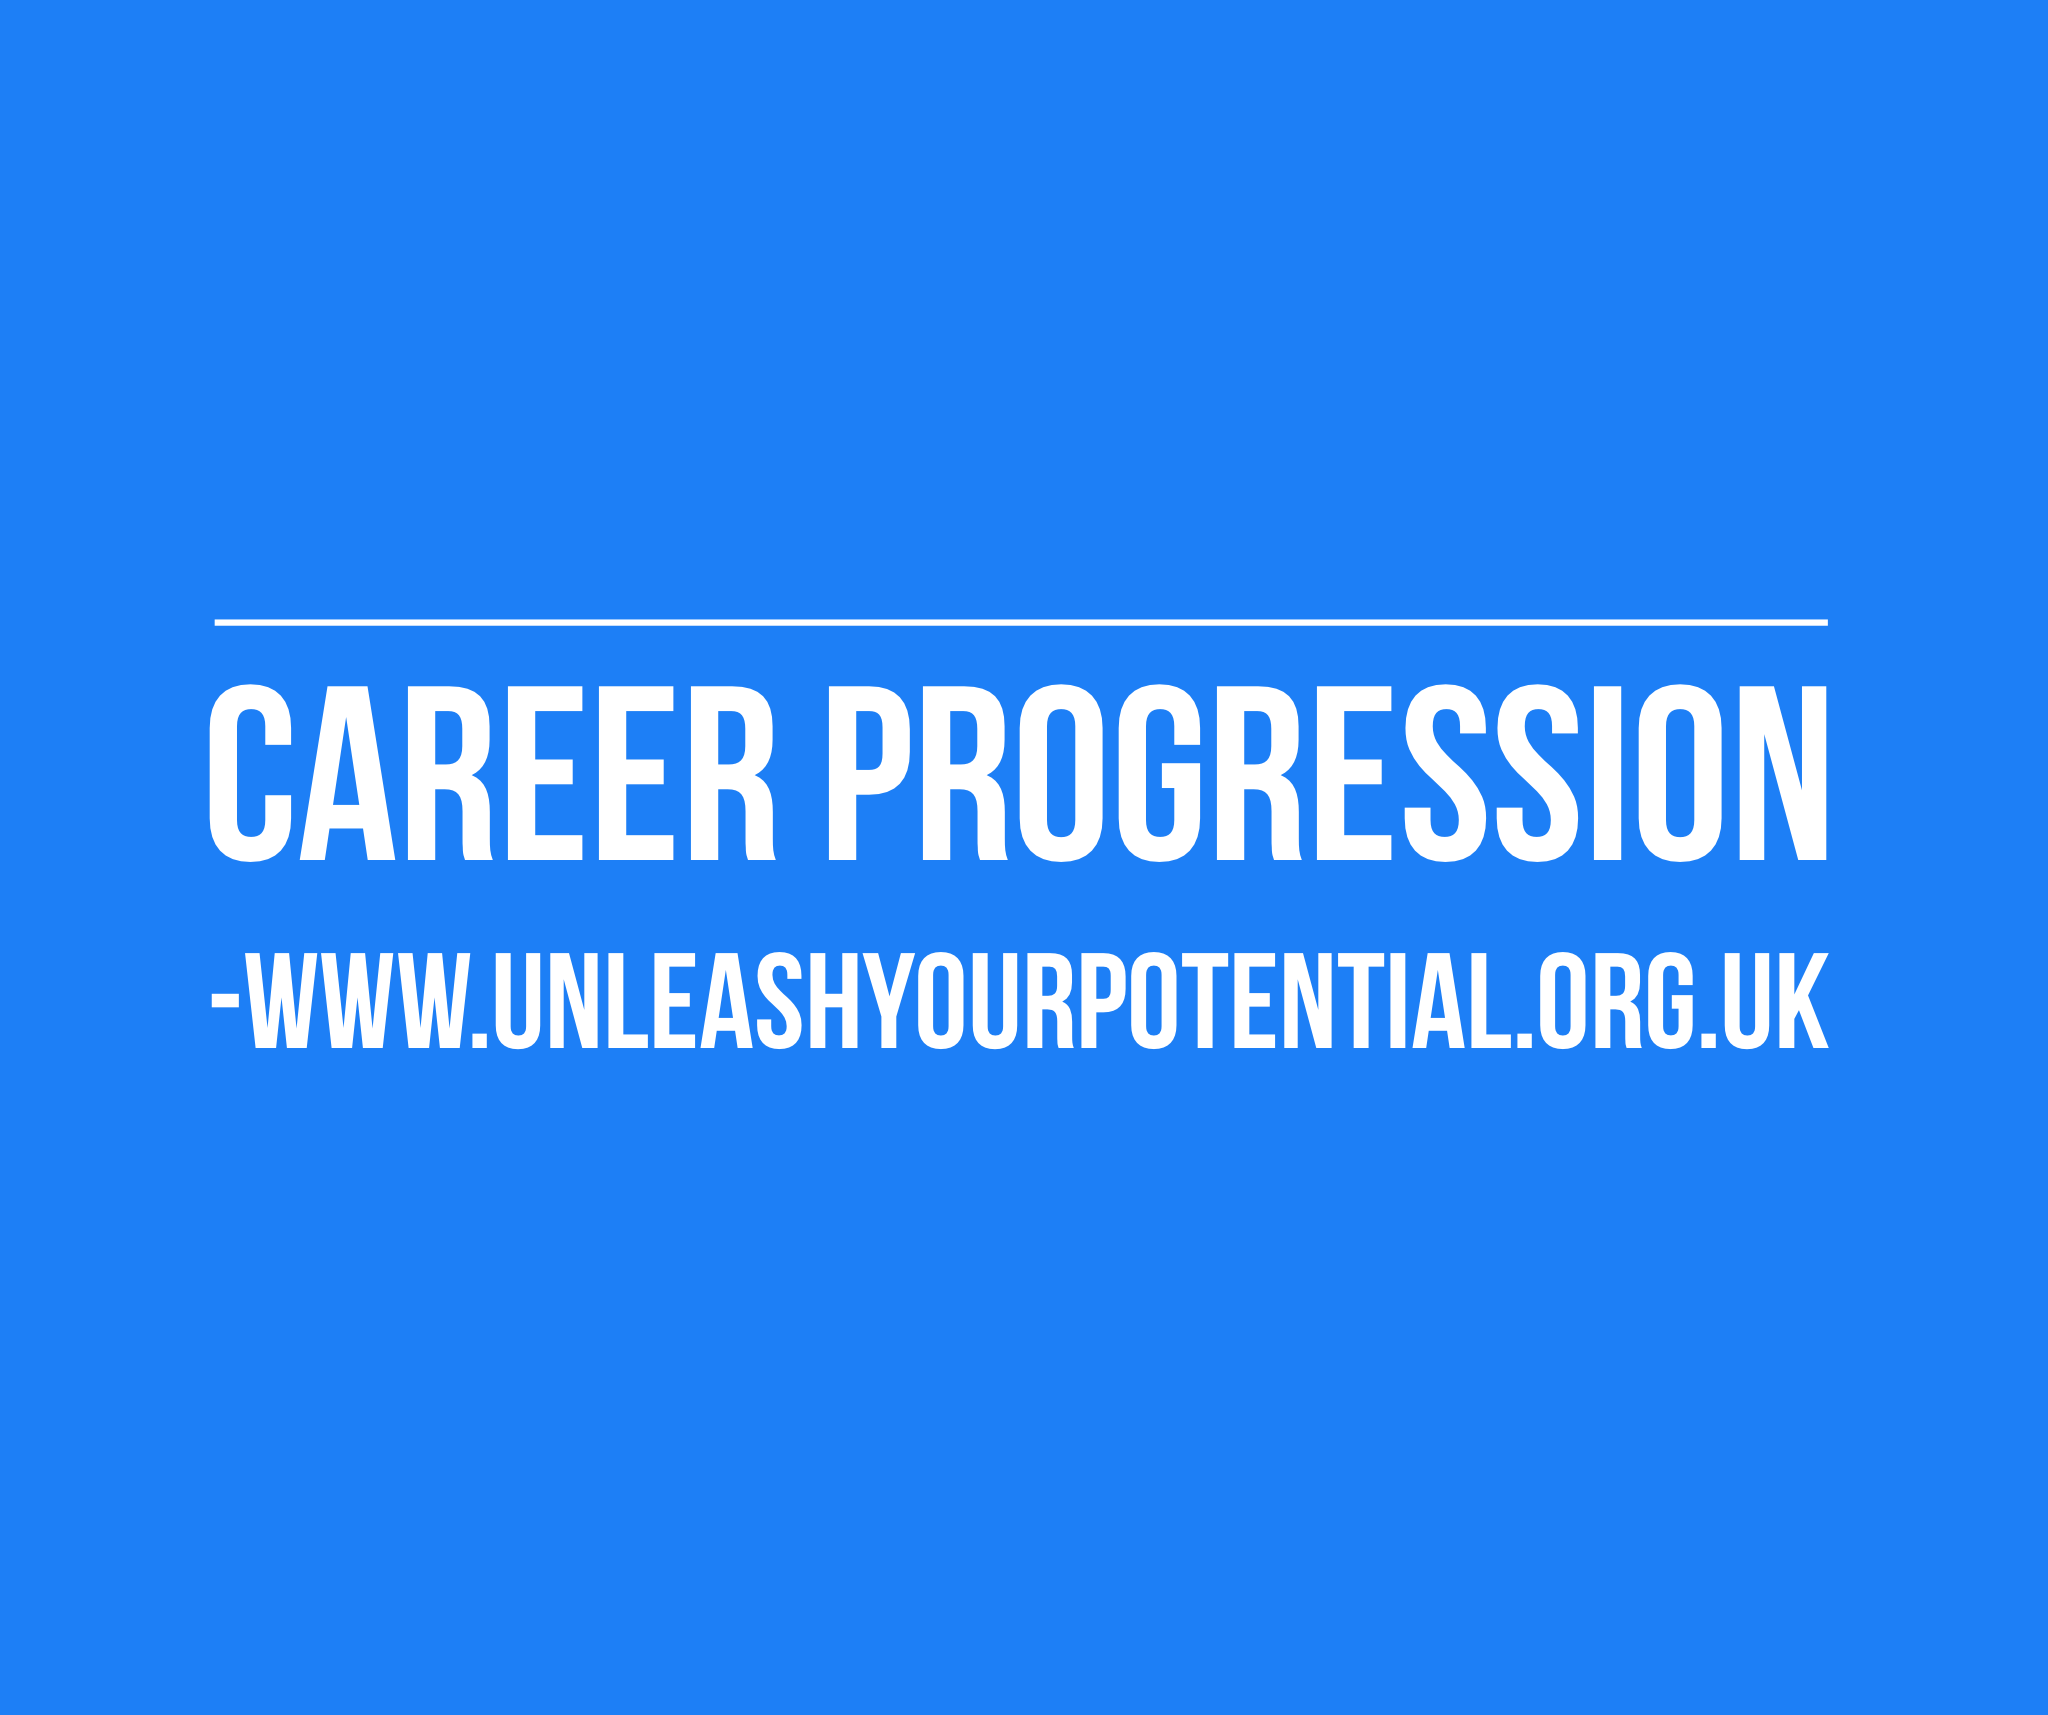 Serious about career progression? … then join the 3% club & invest in yourself